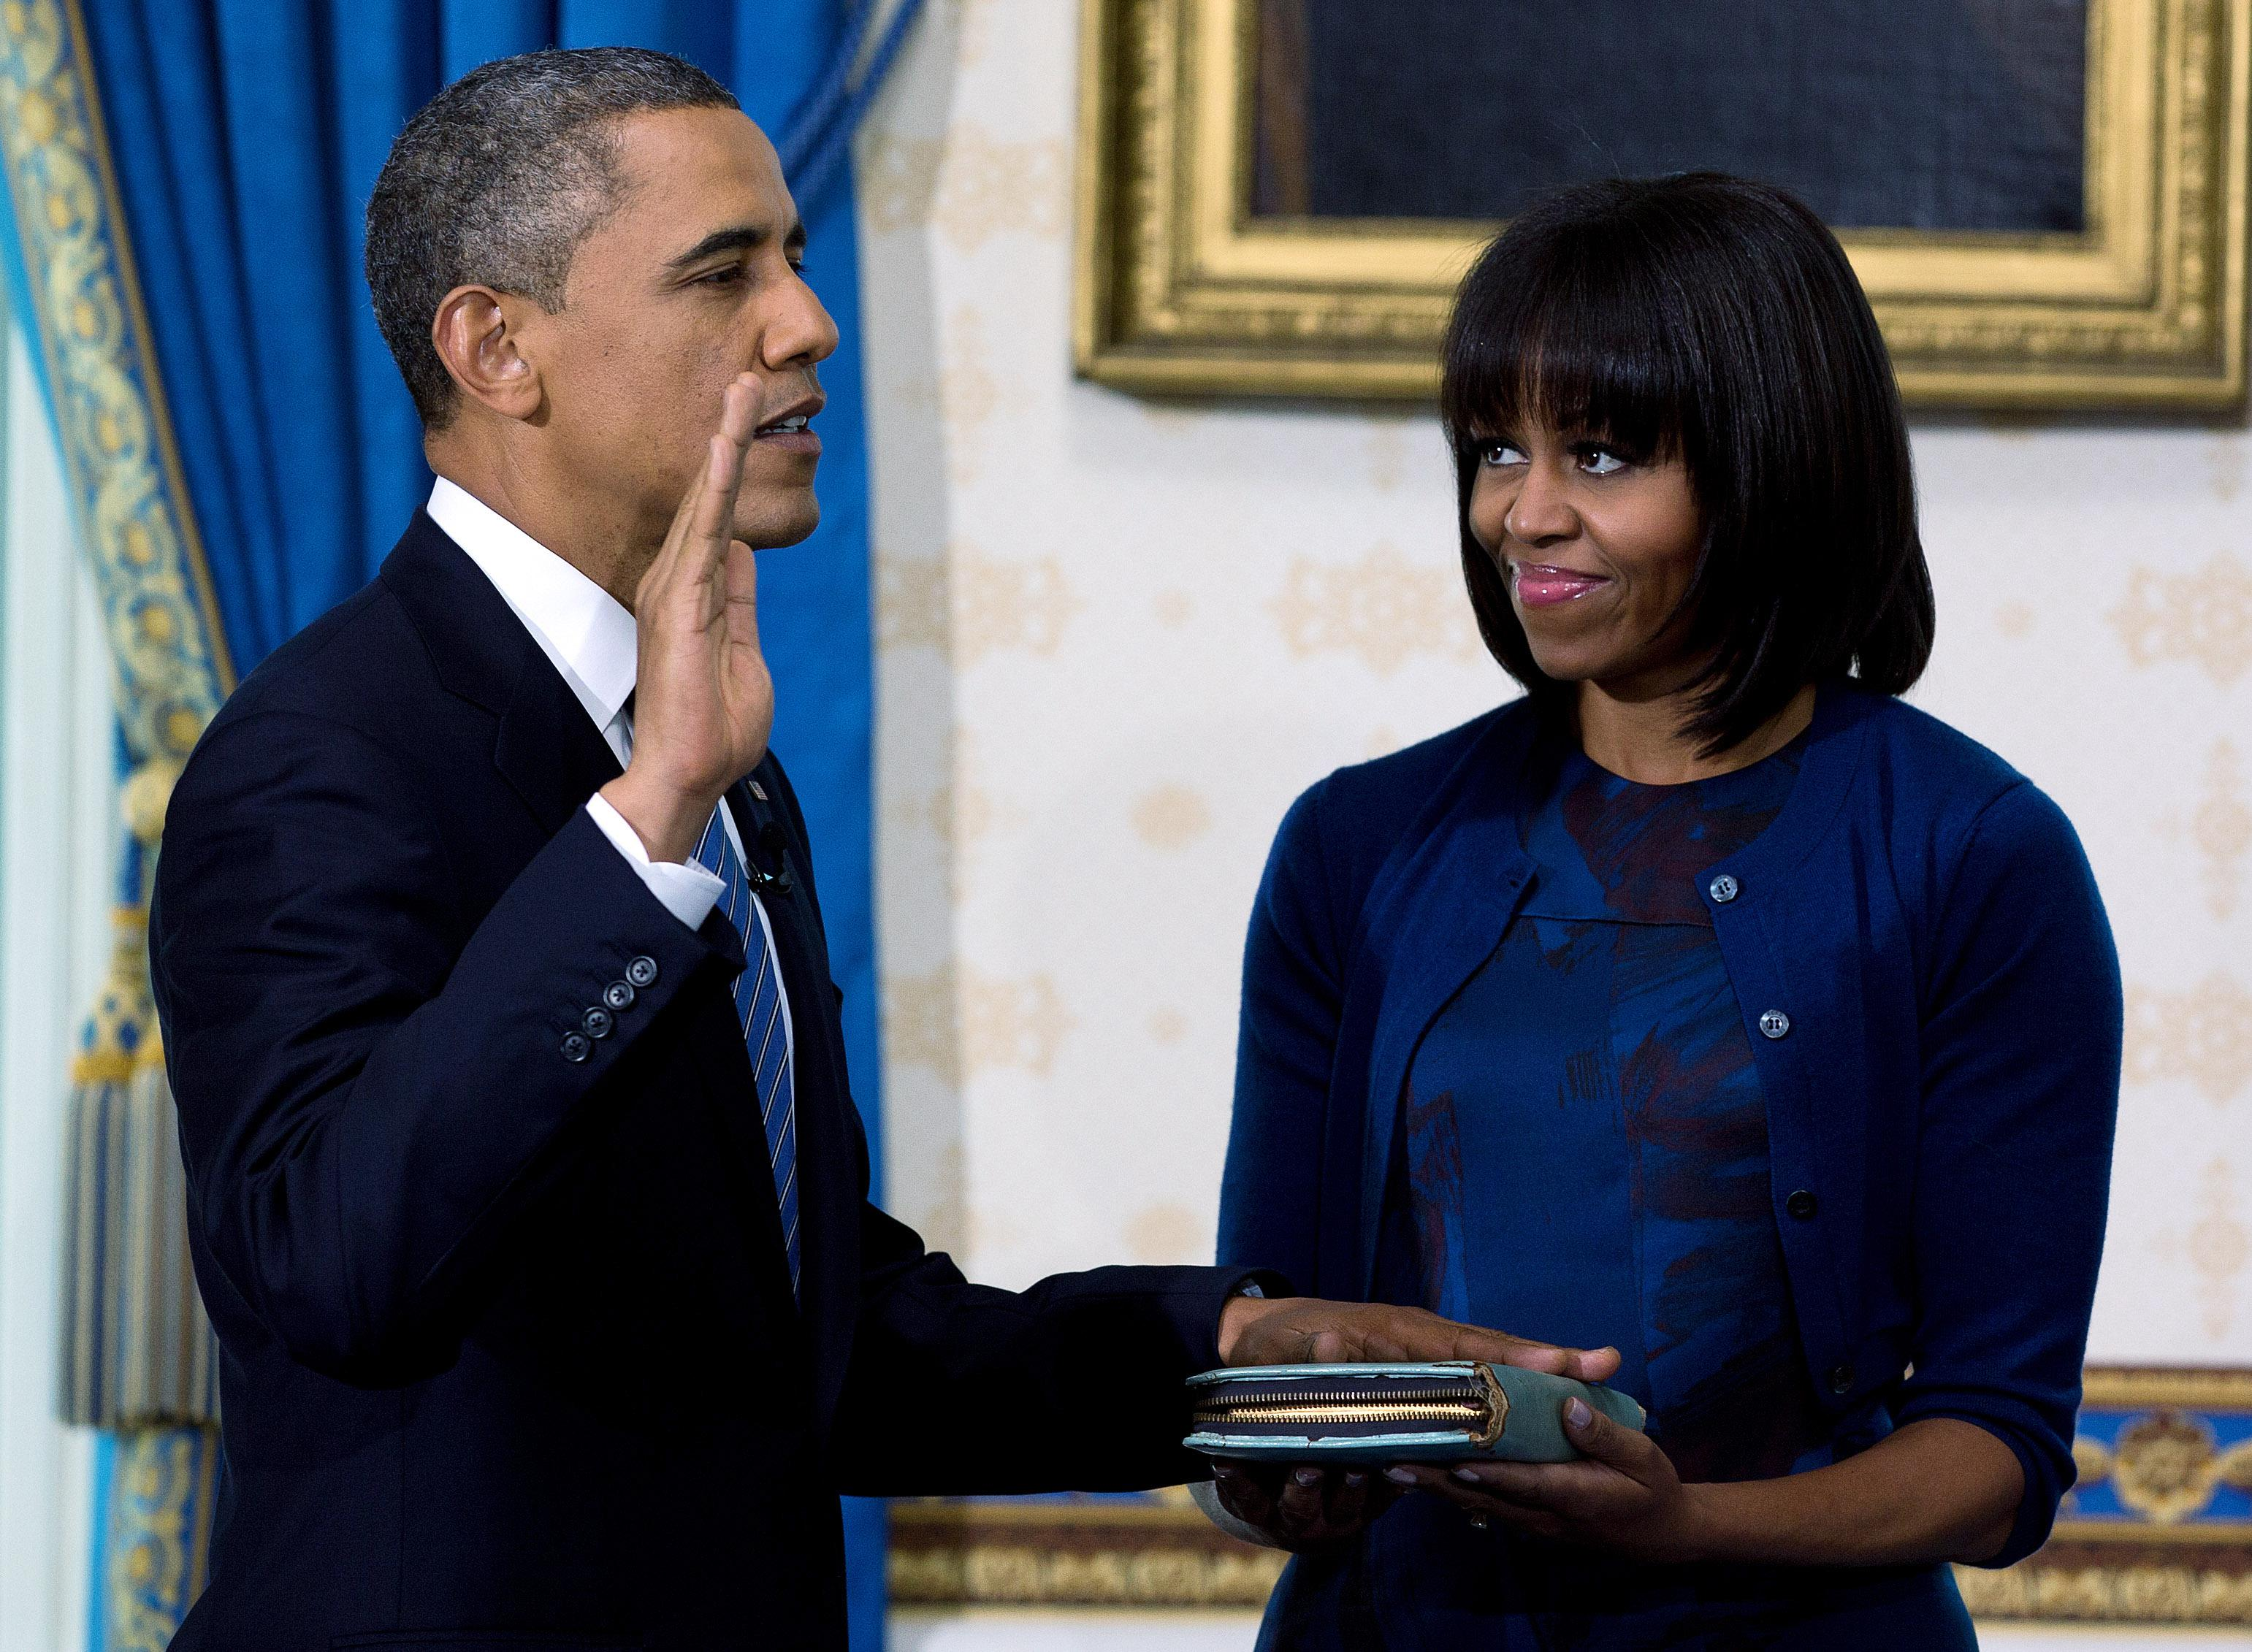 Barack Obama takes the oath of office as first lady Michelle Obama holds the Bible.